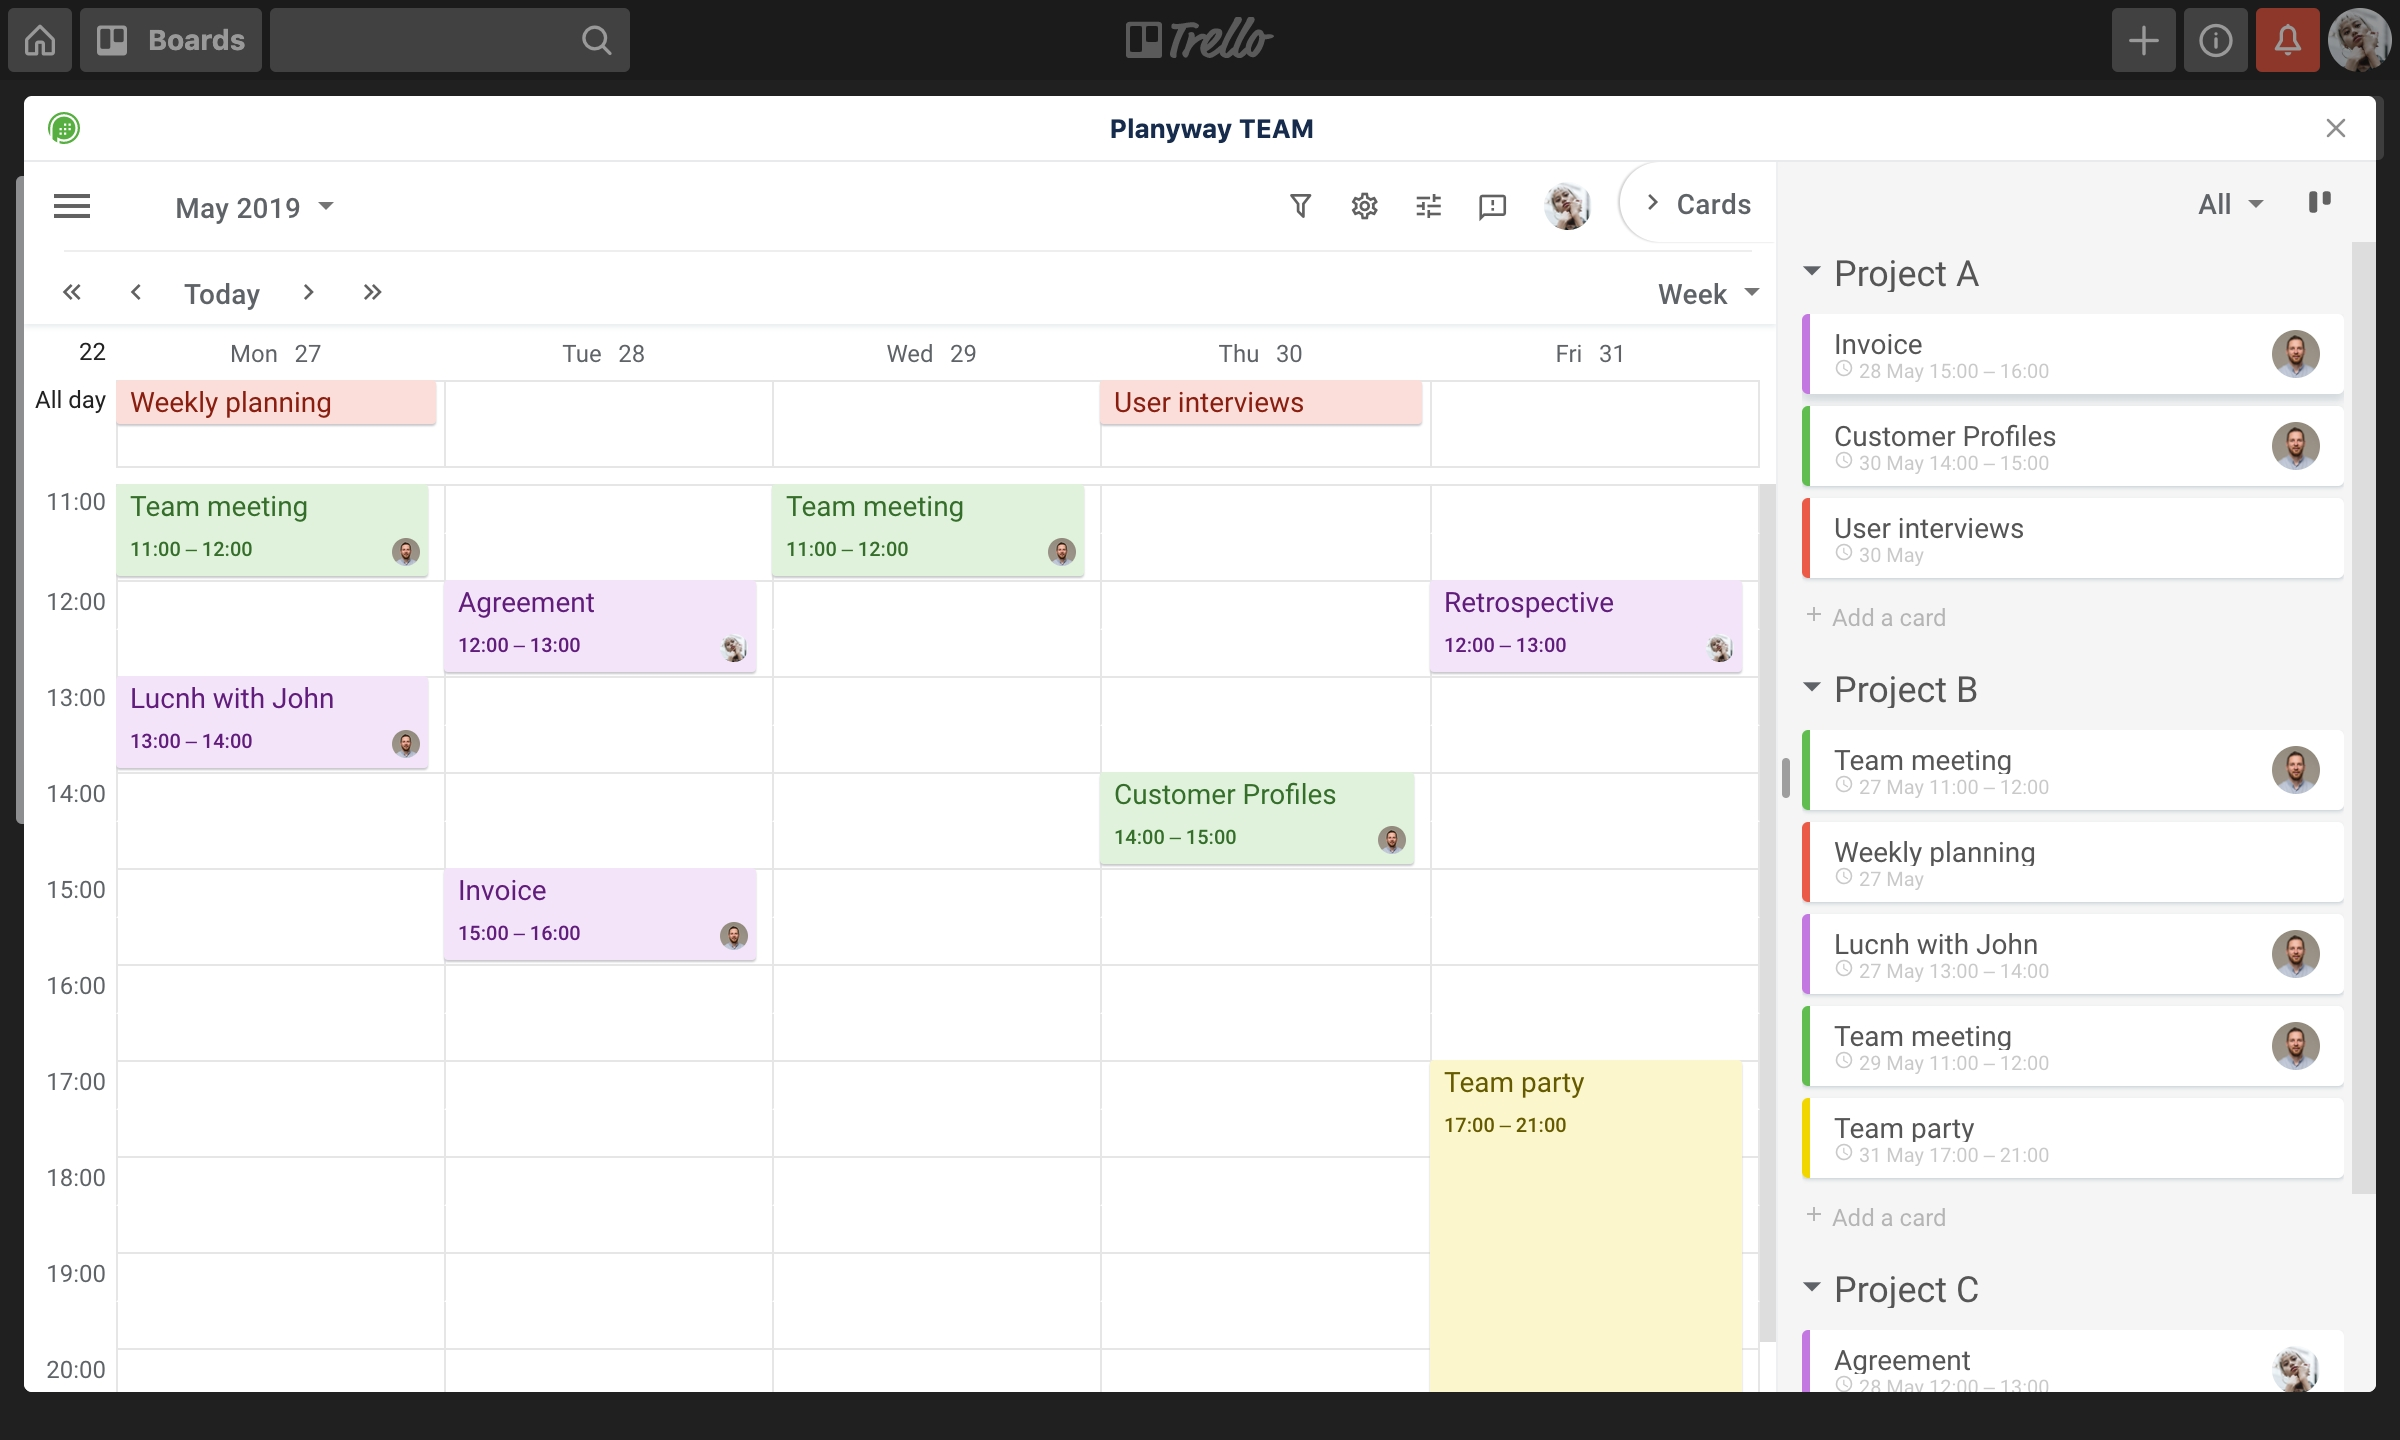 Trello Power-Up | Planyway: Calendar And Timeline For Trello